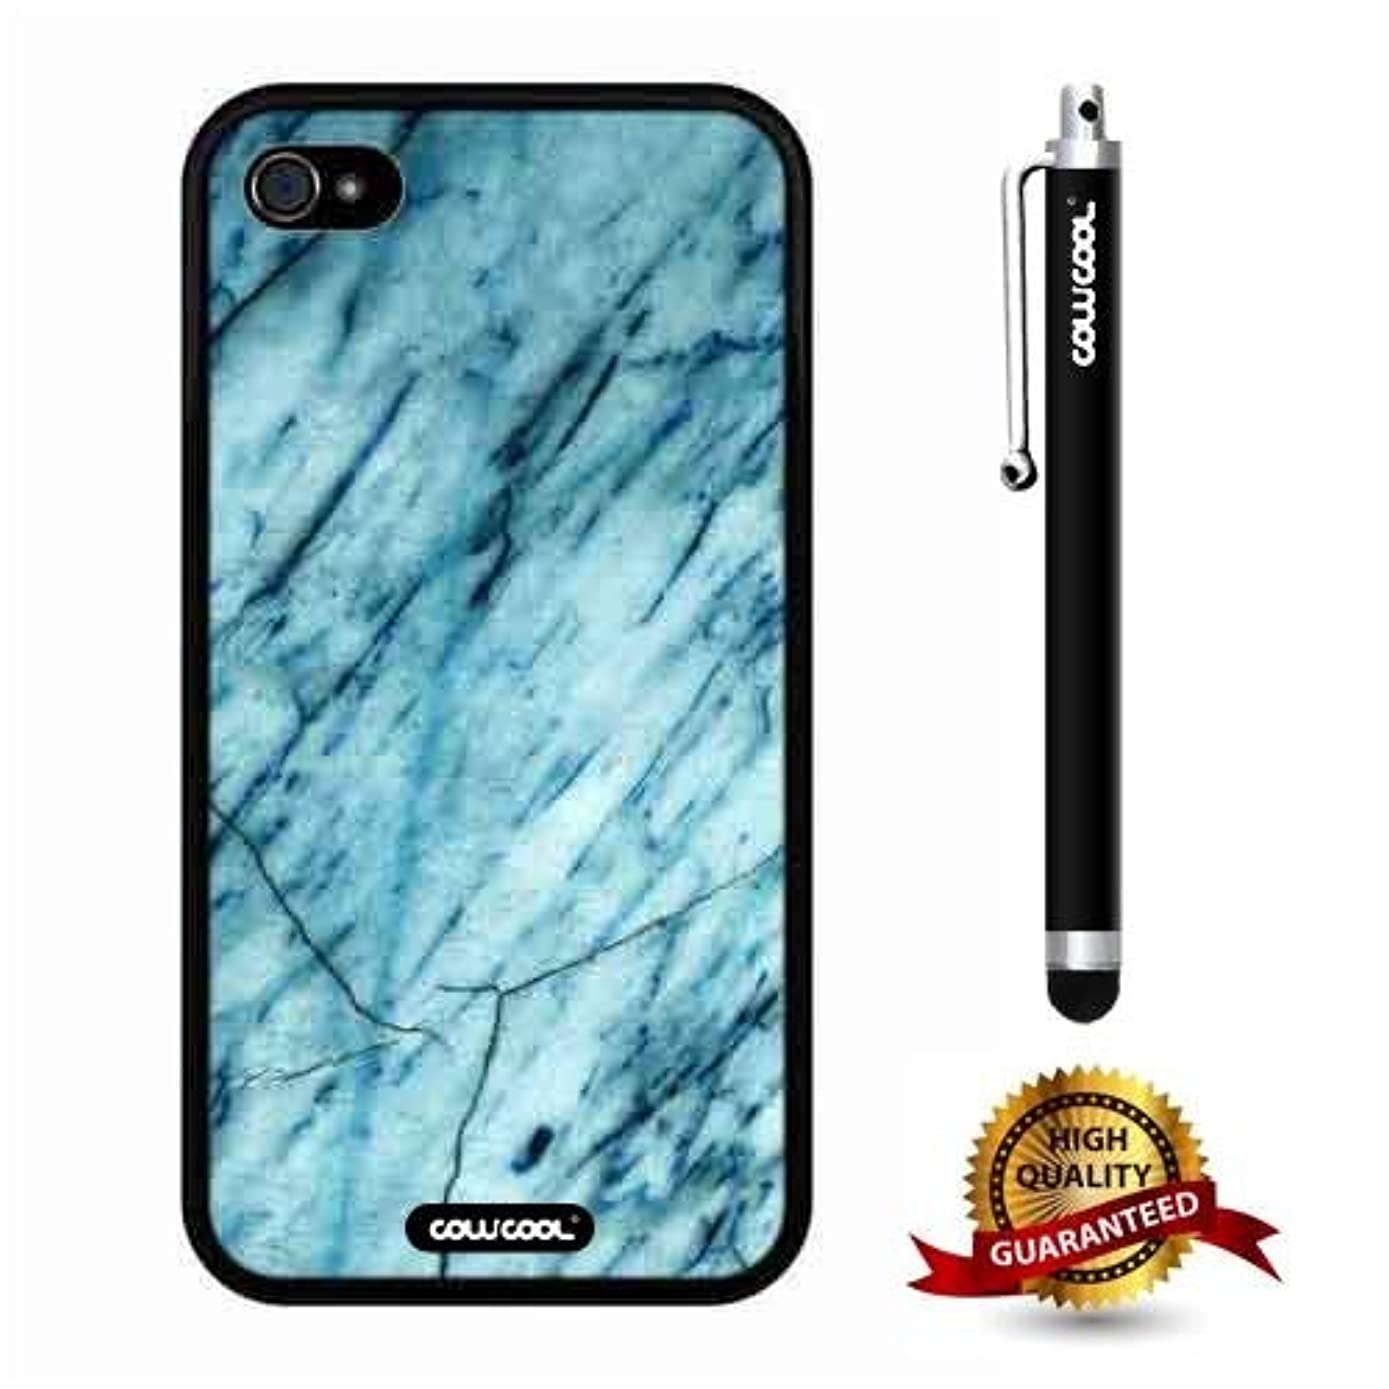 iphone 4S Case, Marble Pattern Case, Cowcool Ultra Thin Soft Silicone Case for Apple iphone 4S - Slash Grid Marble Texture